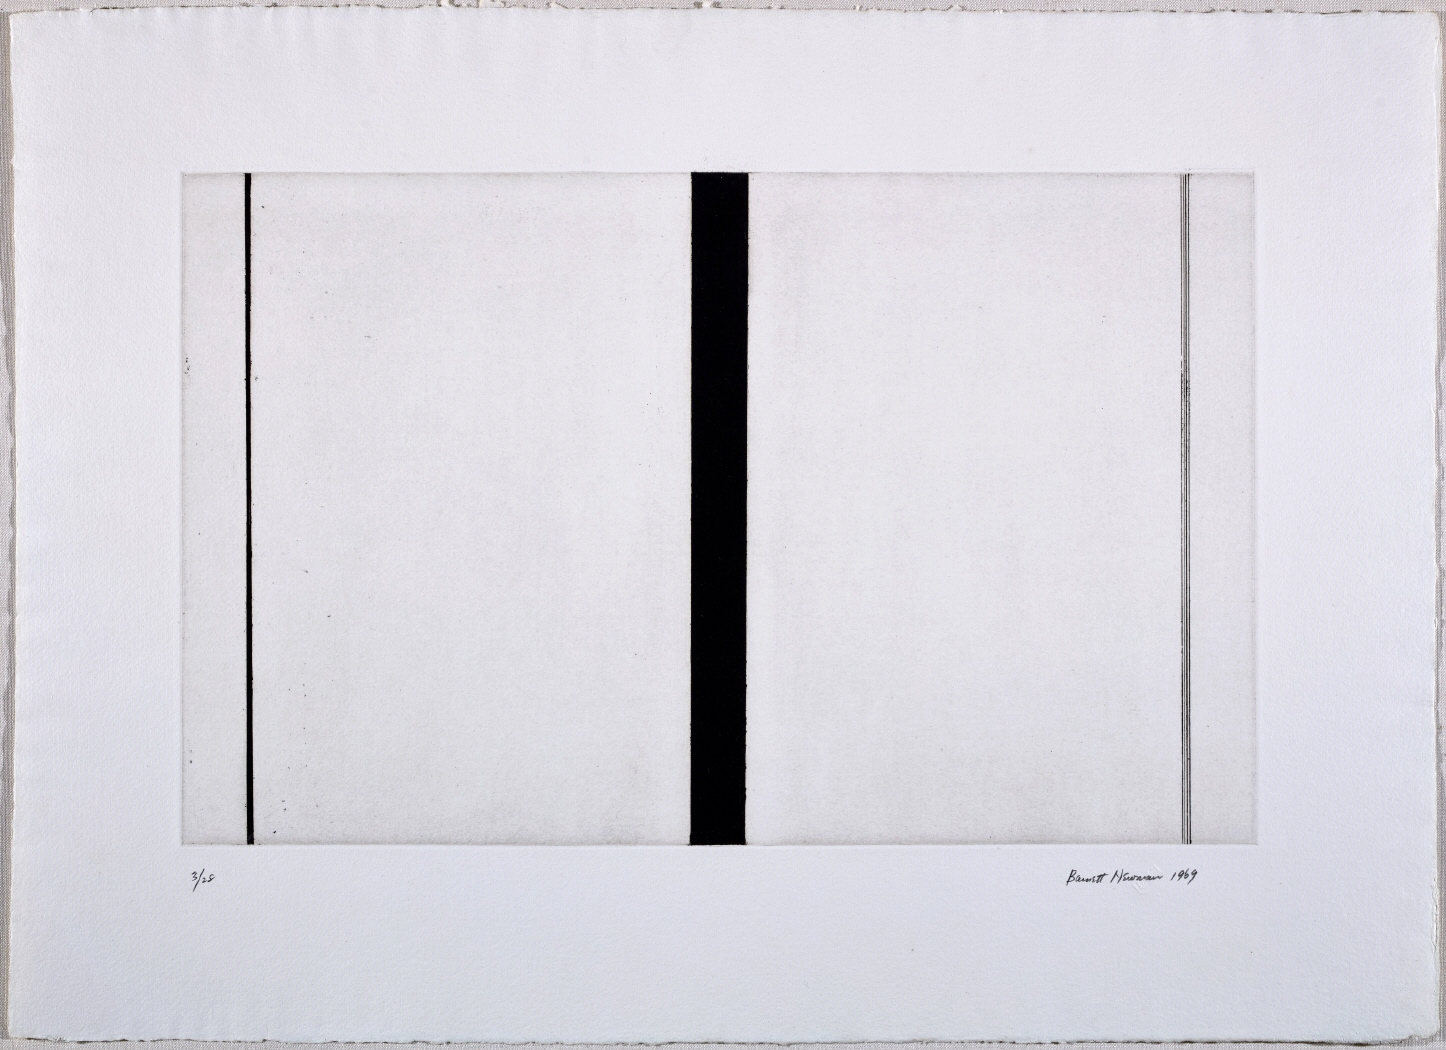 Untitled Etching #1, 1969